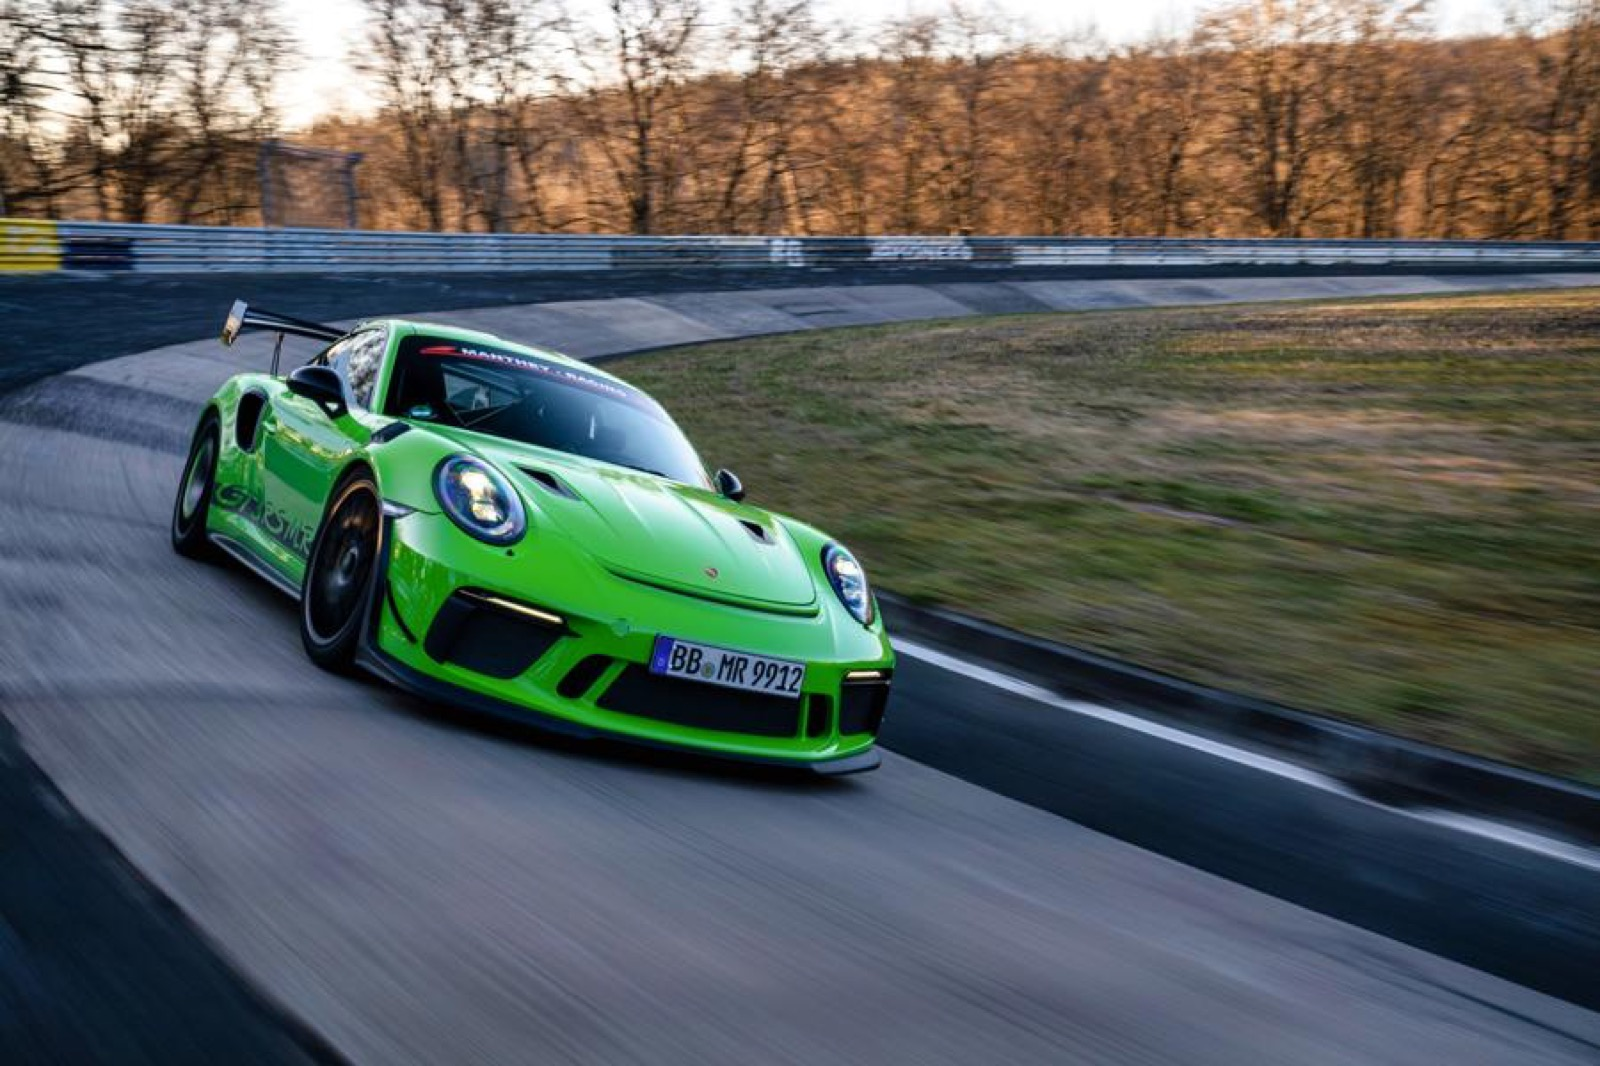 Porsche-911-GT3-RS-MR-by-Manthey-Racing-12